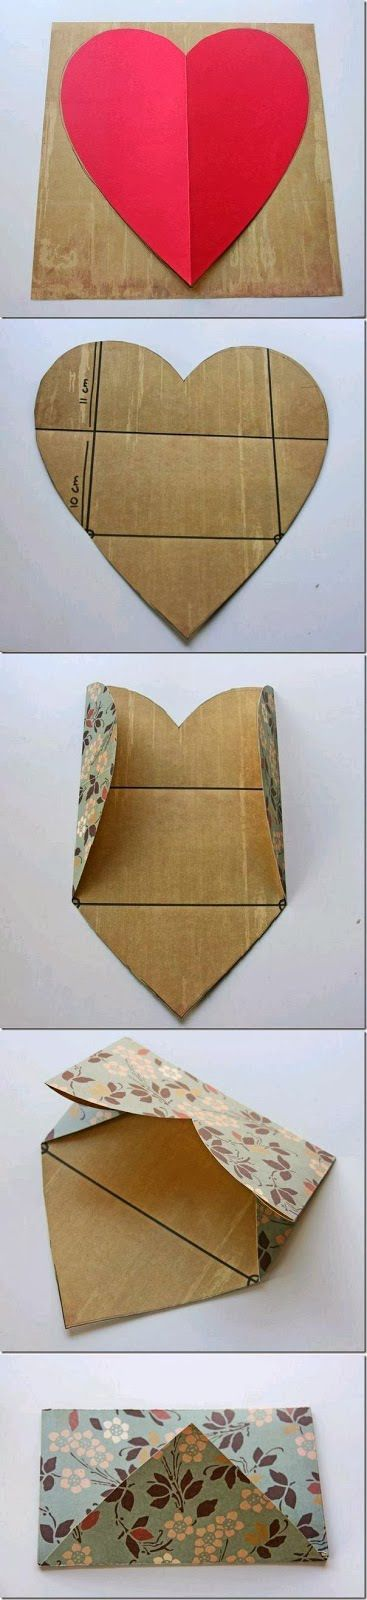 DIY-Envelope-from-a-Heart